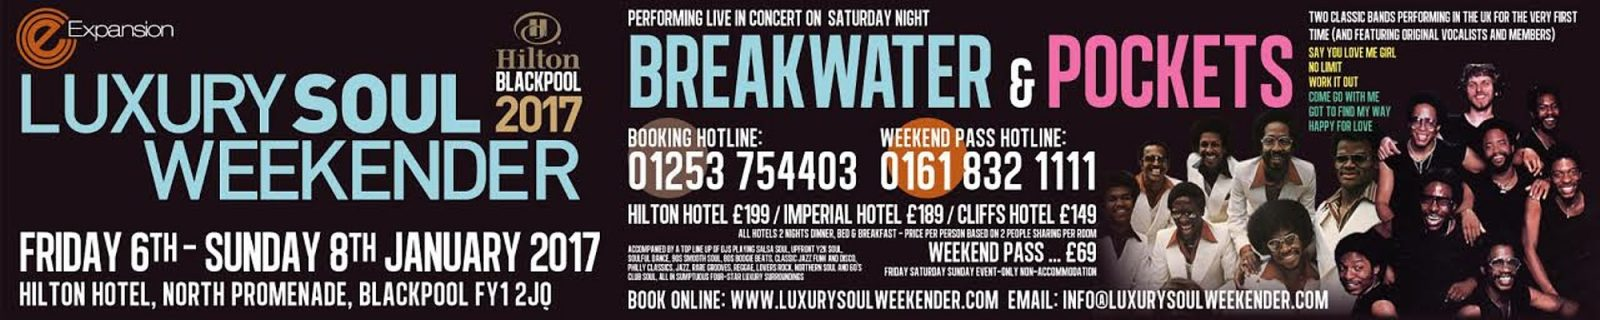 Luxury Soul Weekender 2017 Friday 6th - Sunday 8th January 2017 Hilton Hotel North Promenade Blackpool FY1 2JQ